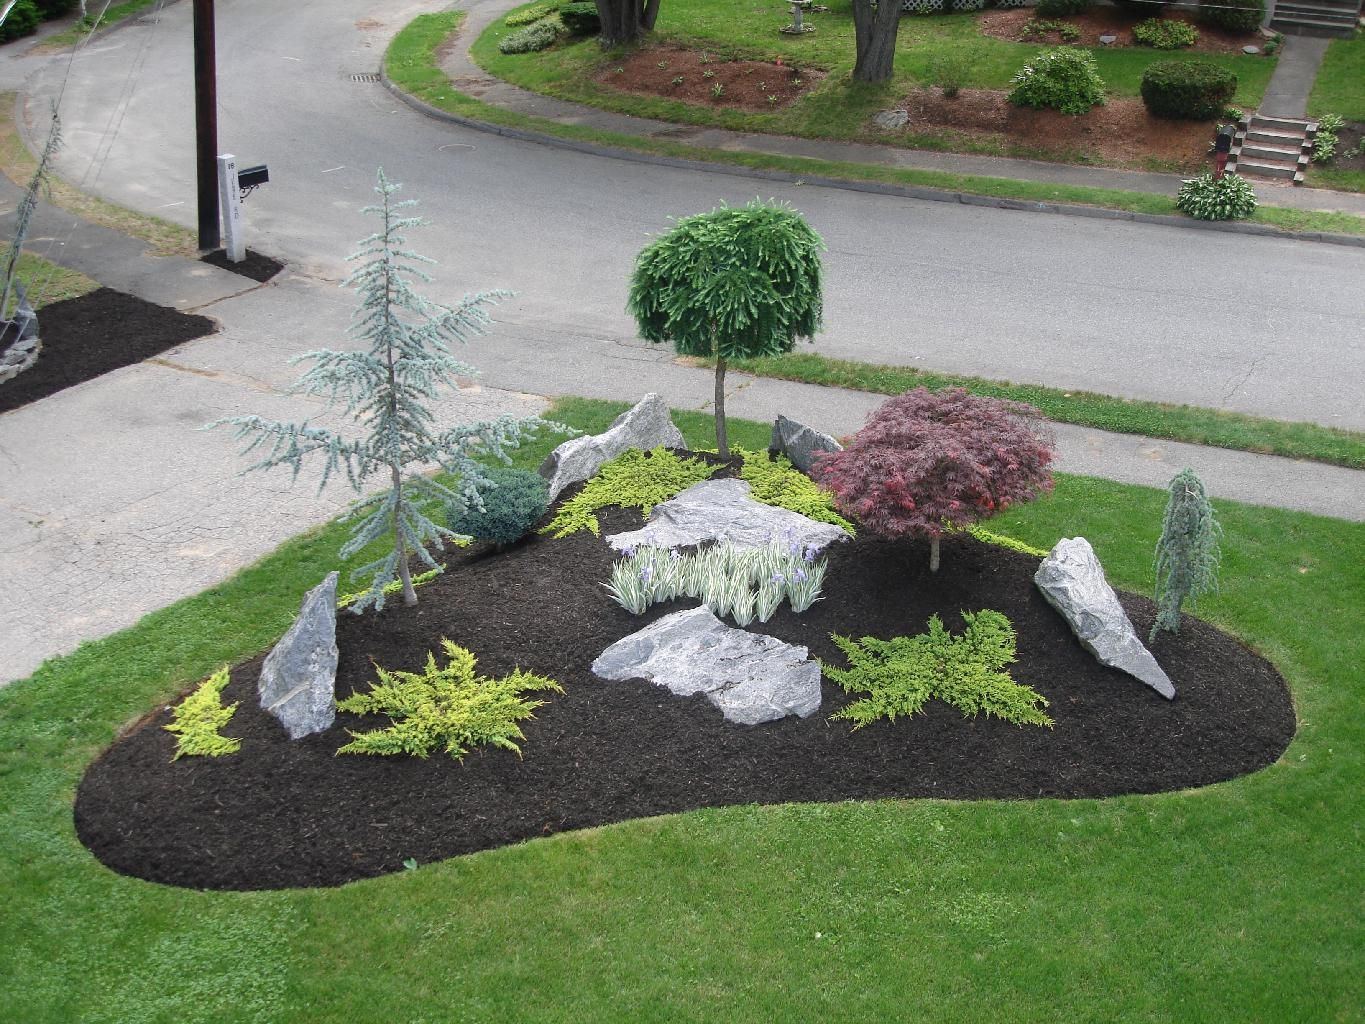 Simple landscape designs with rock beds google search for Landscape design plans